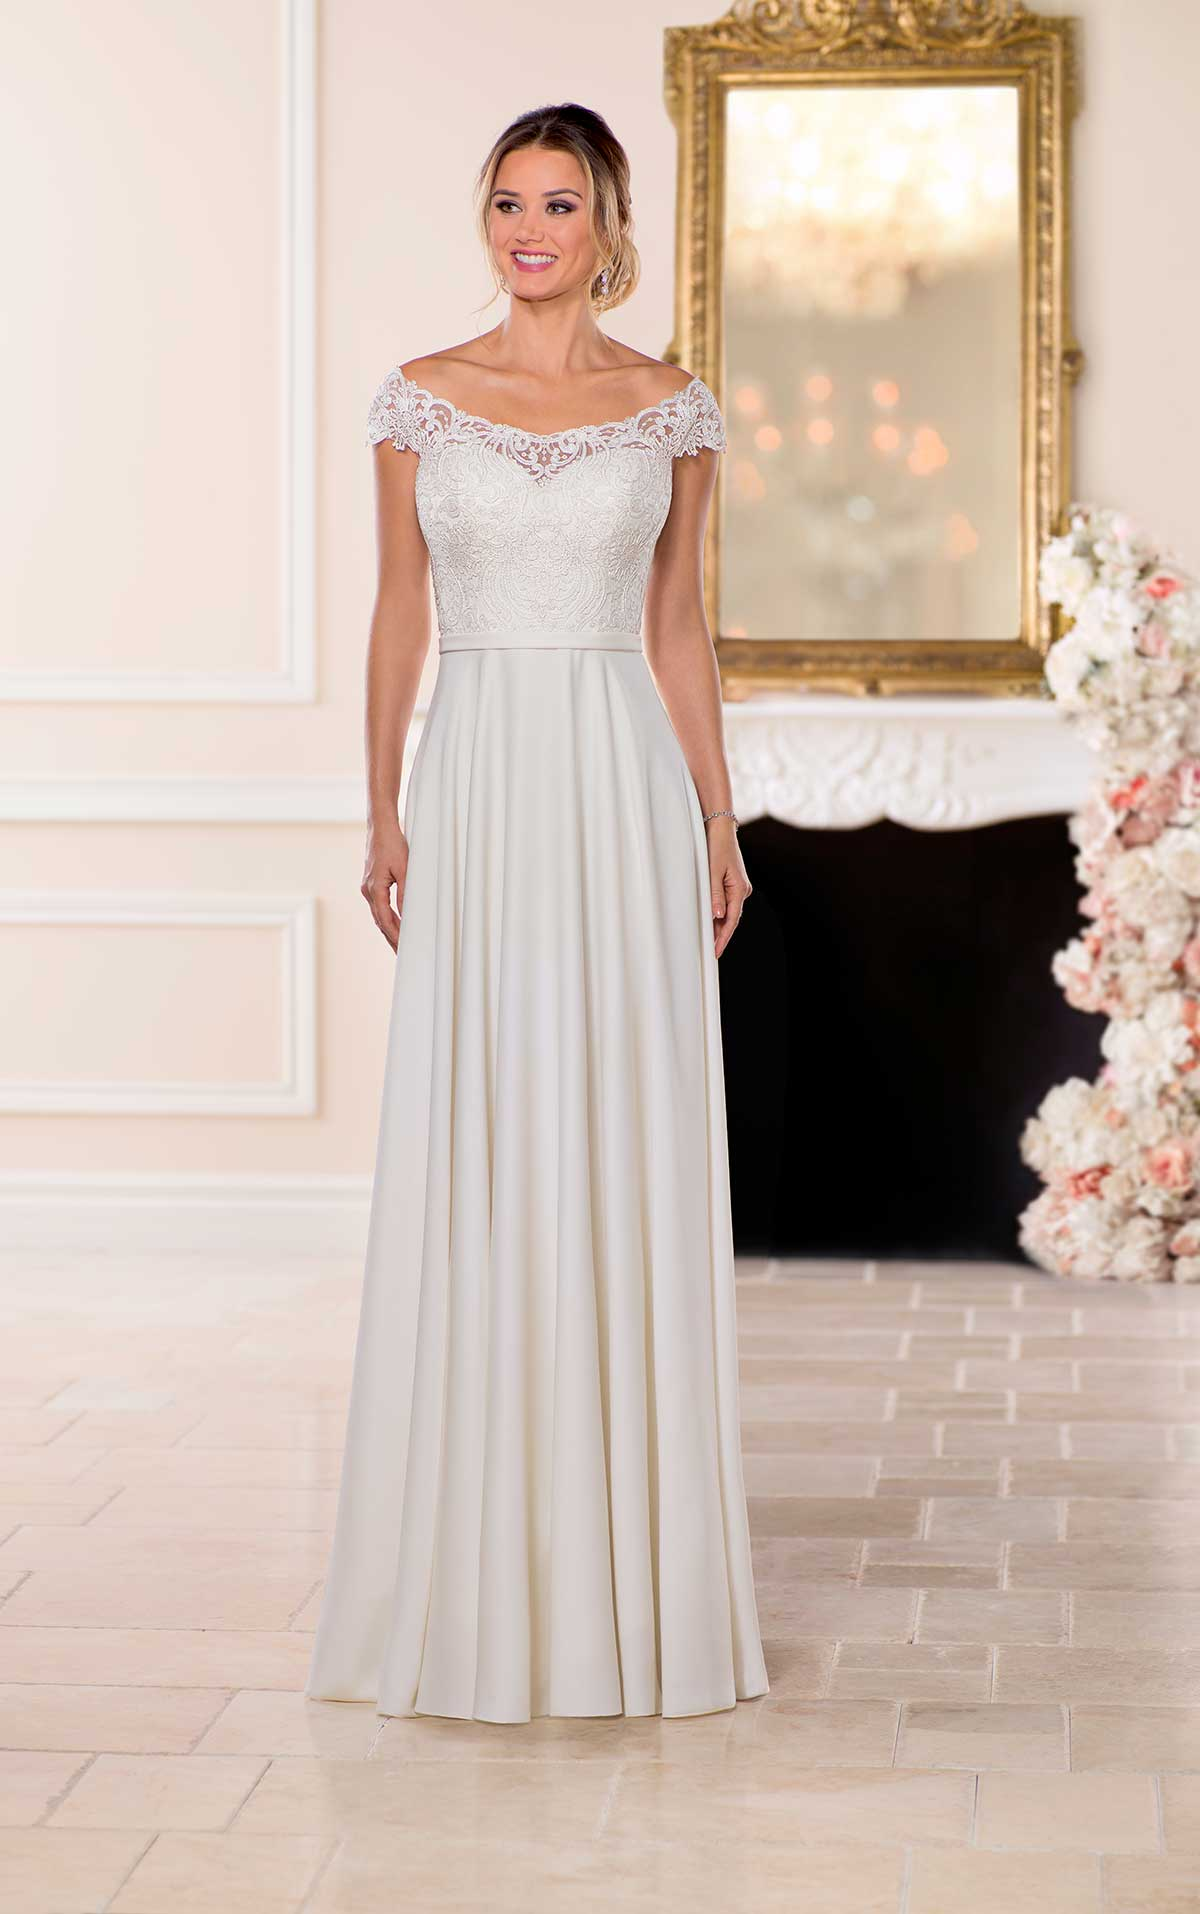 Stella York Wedding Dress 2018 Web 6635-1